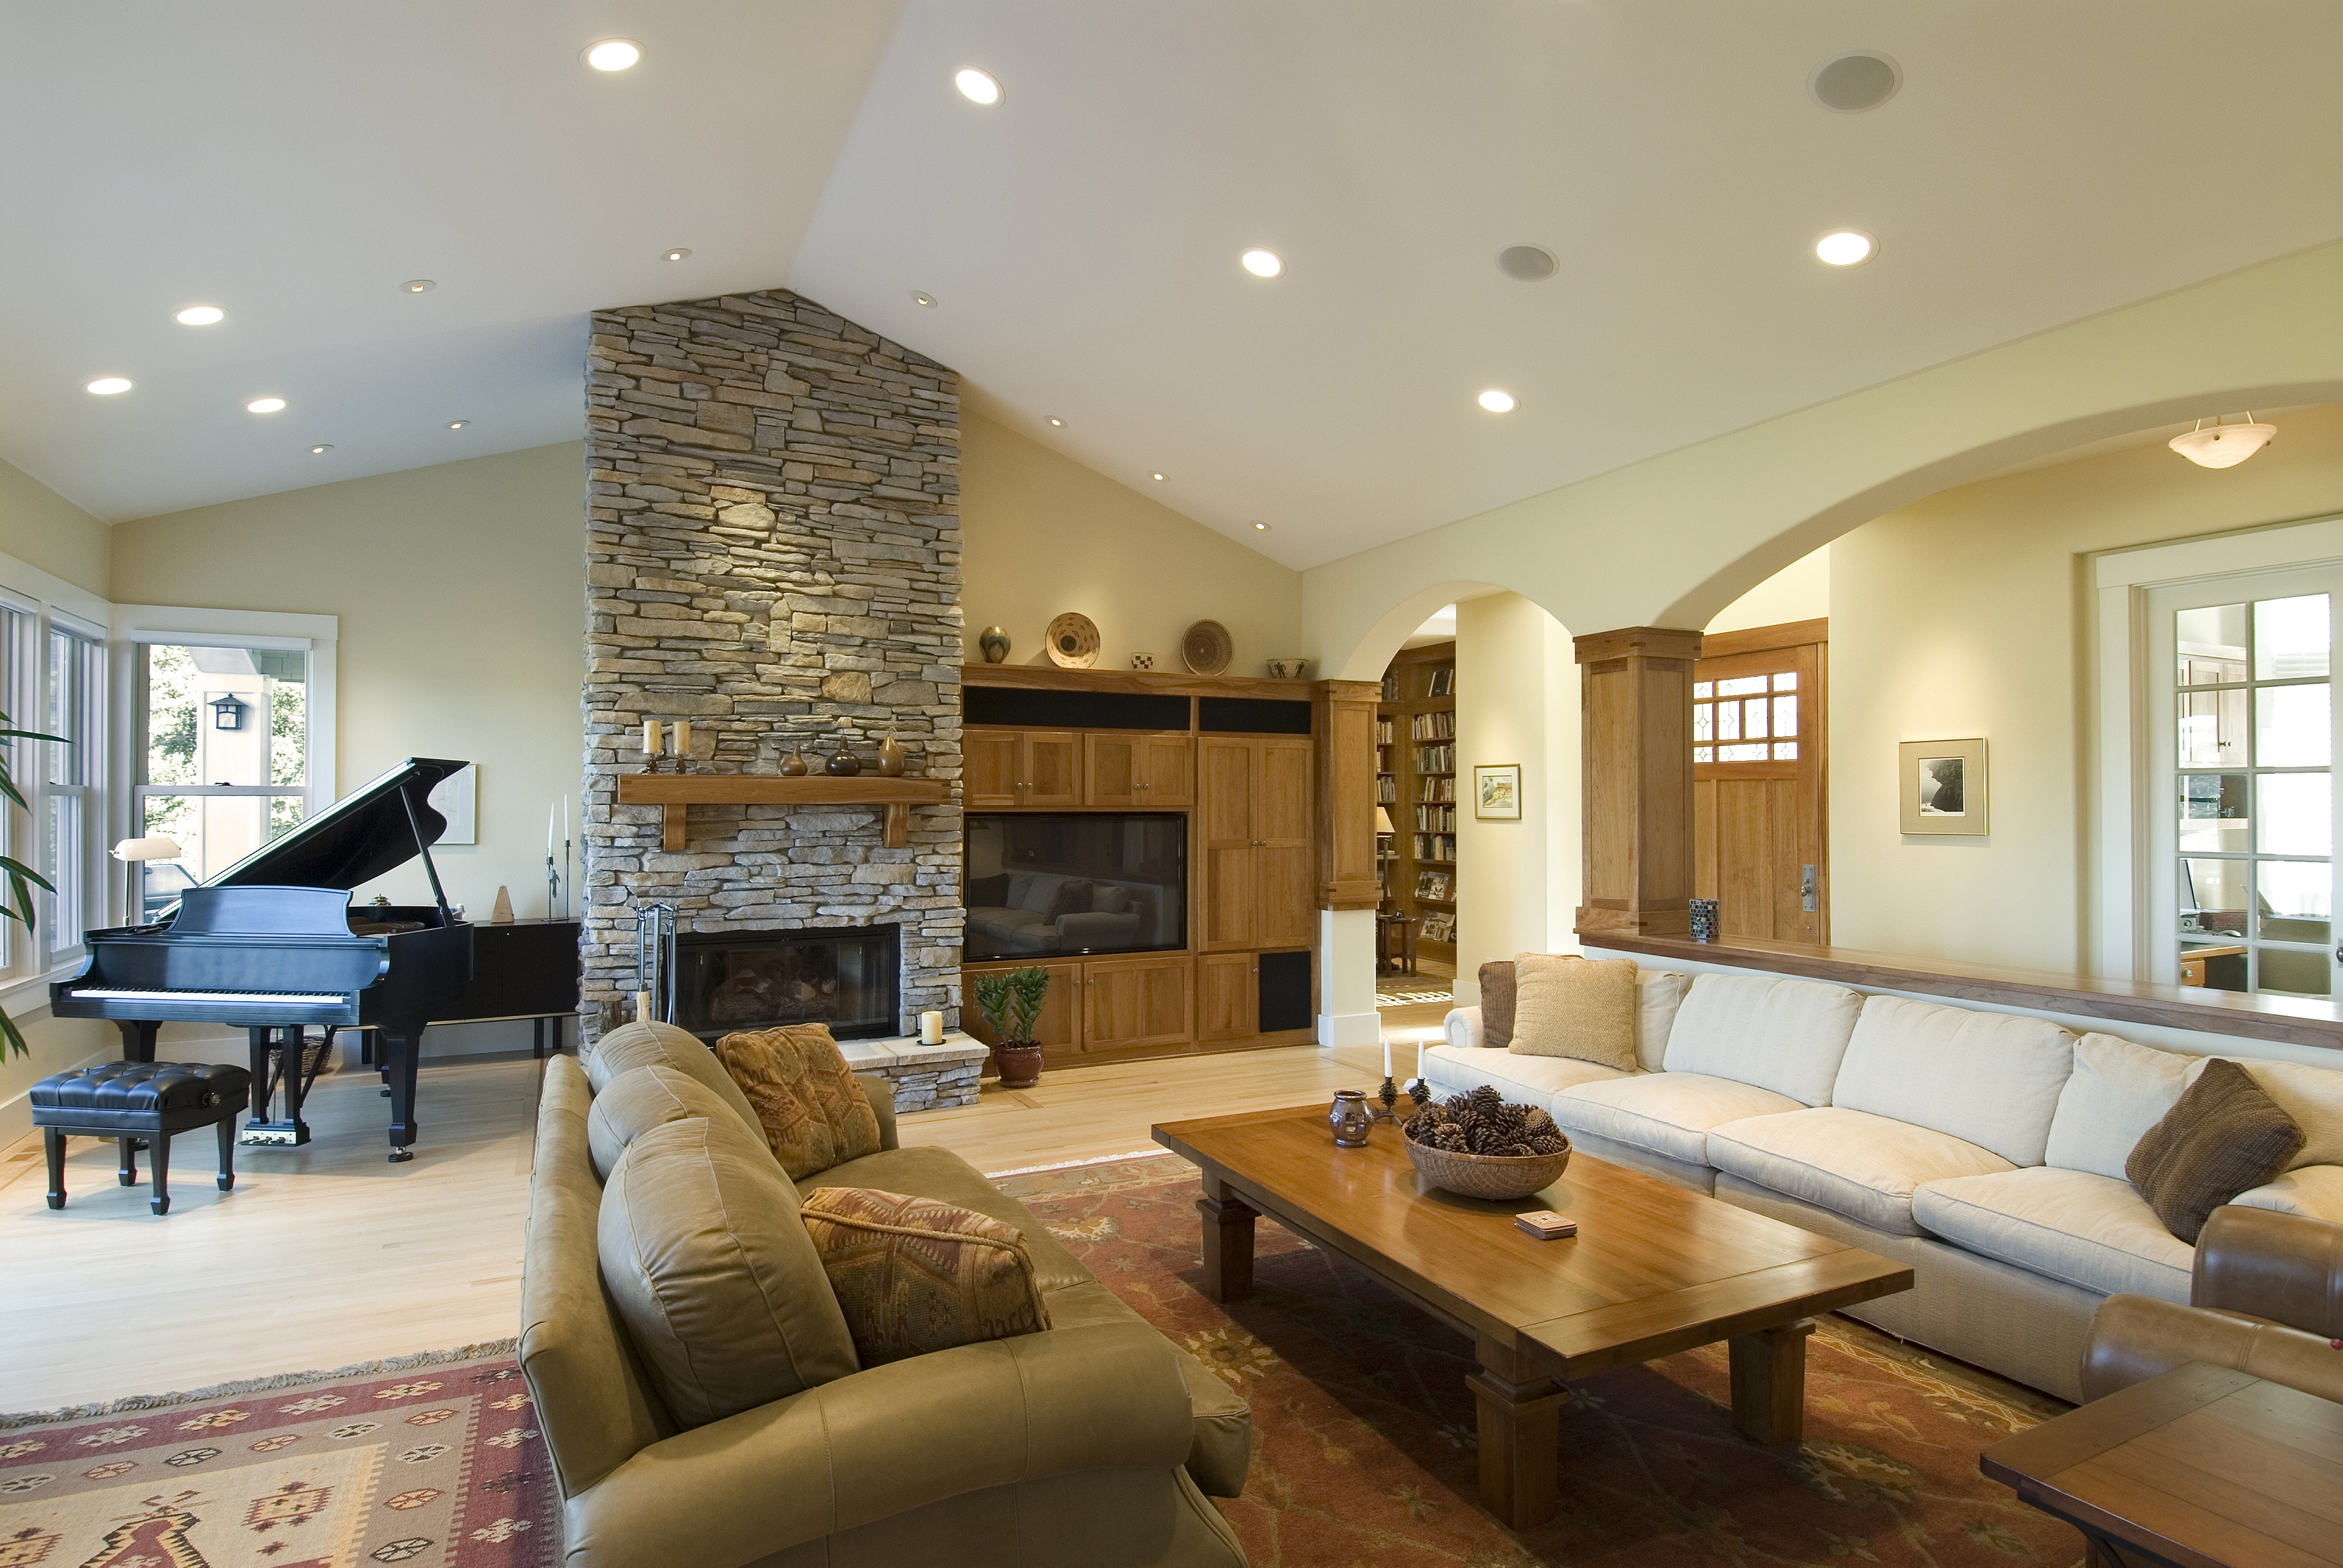 New living room with home renovation loan